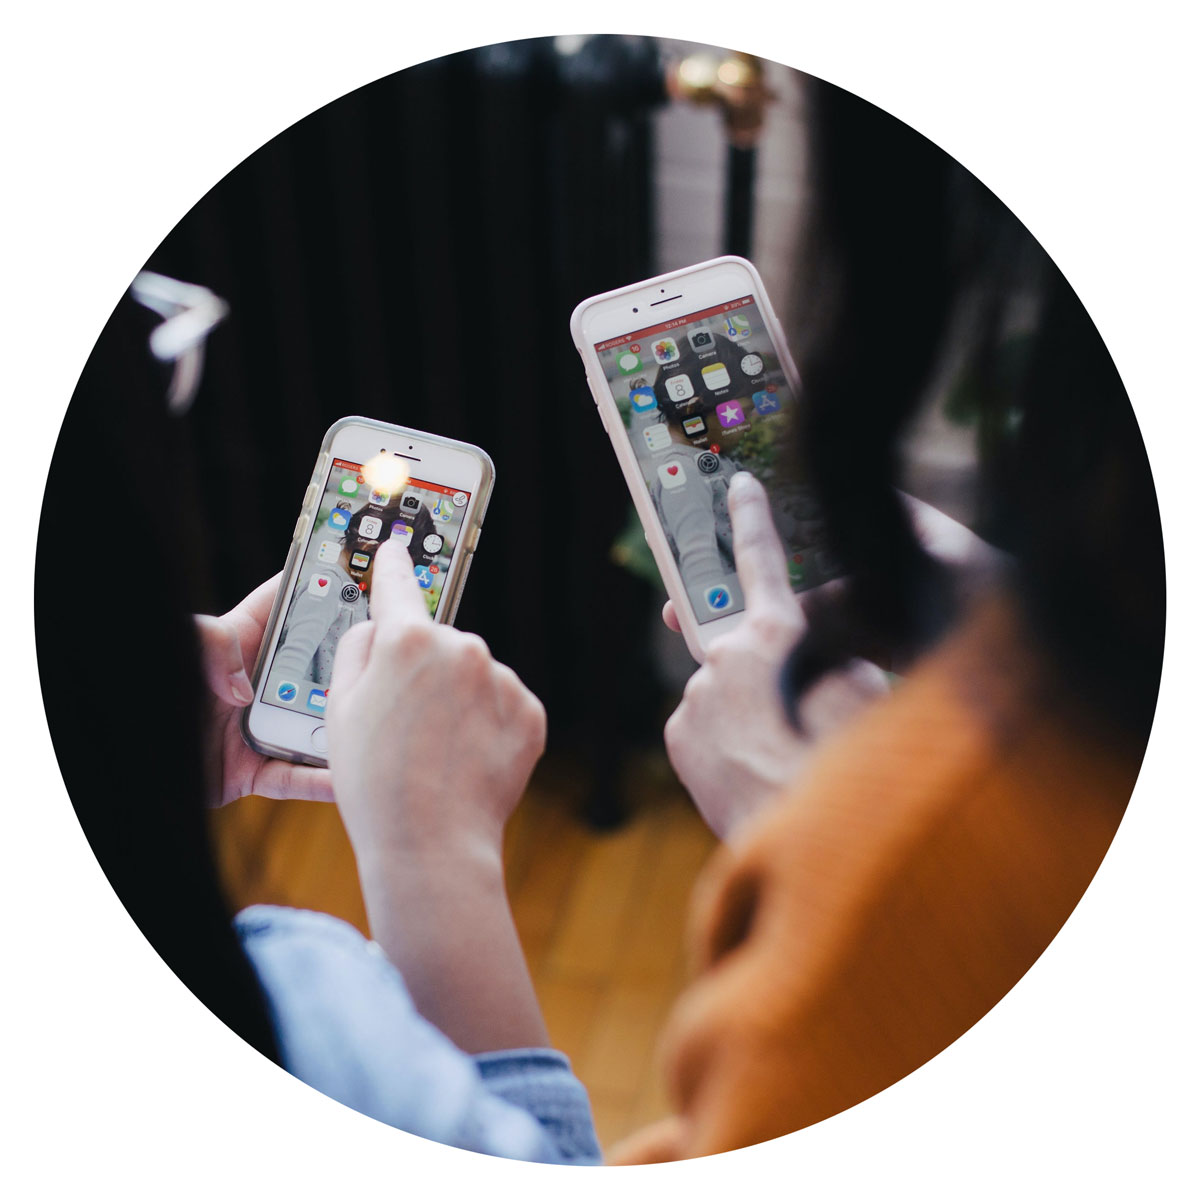 image of two people using mobile phones